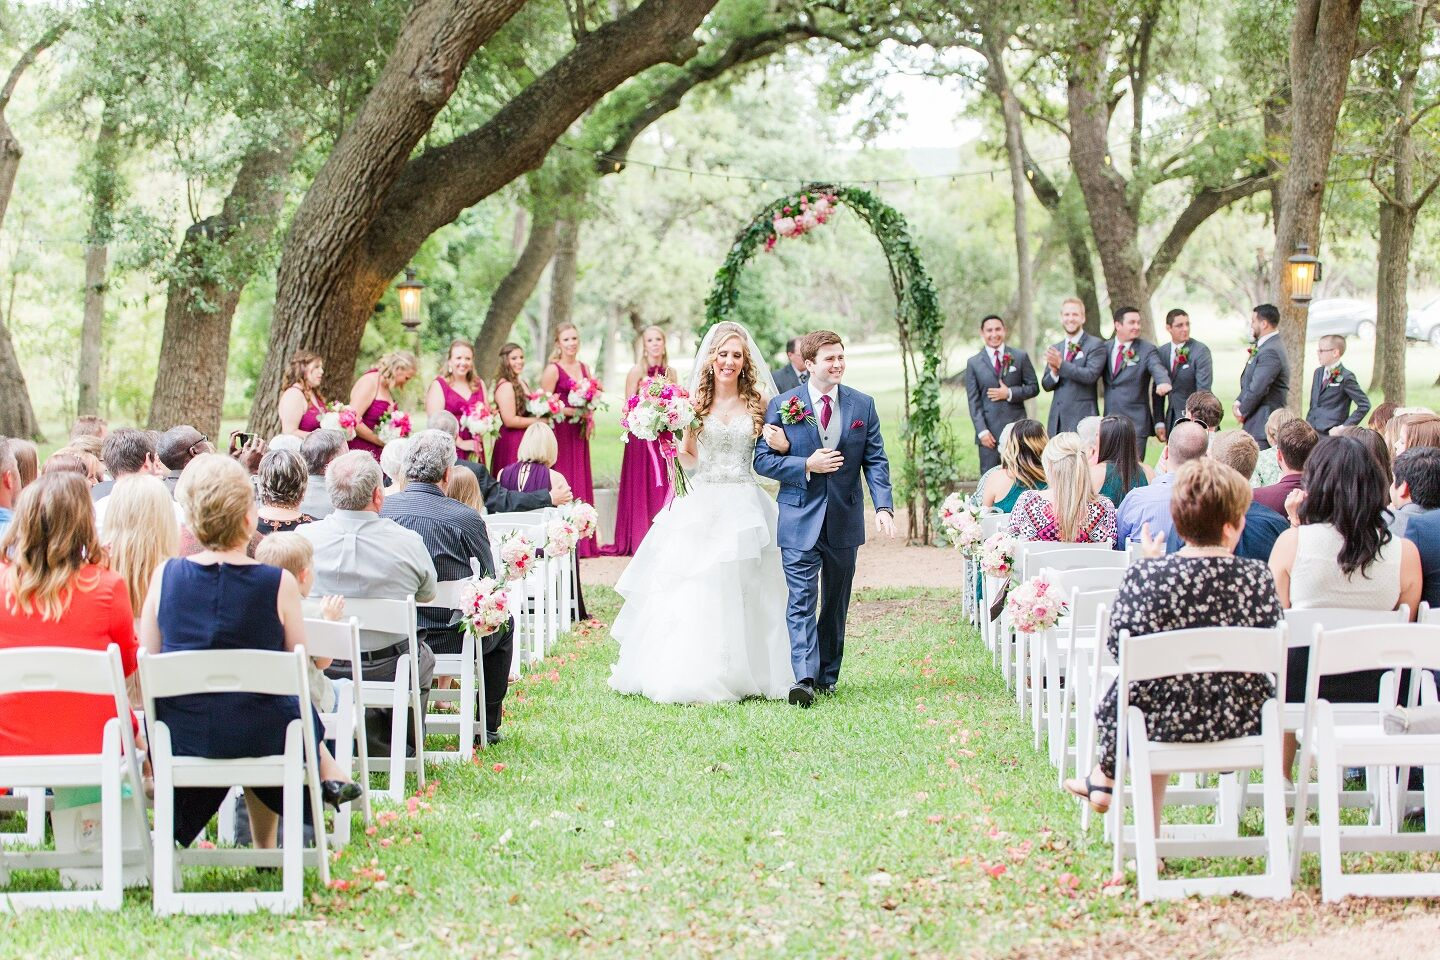 Scenic Springs Wedding Event Site